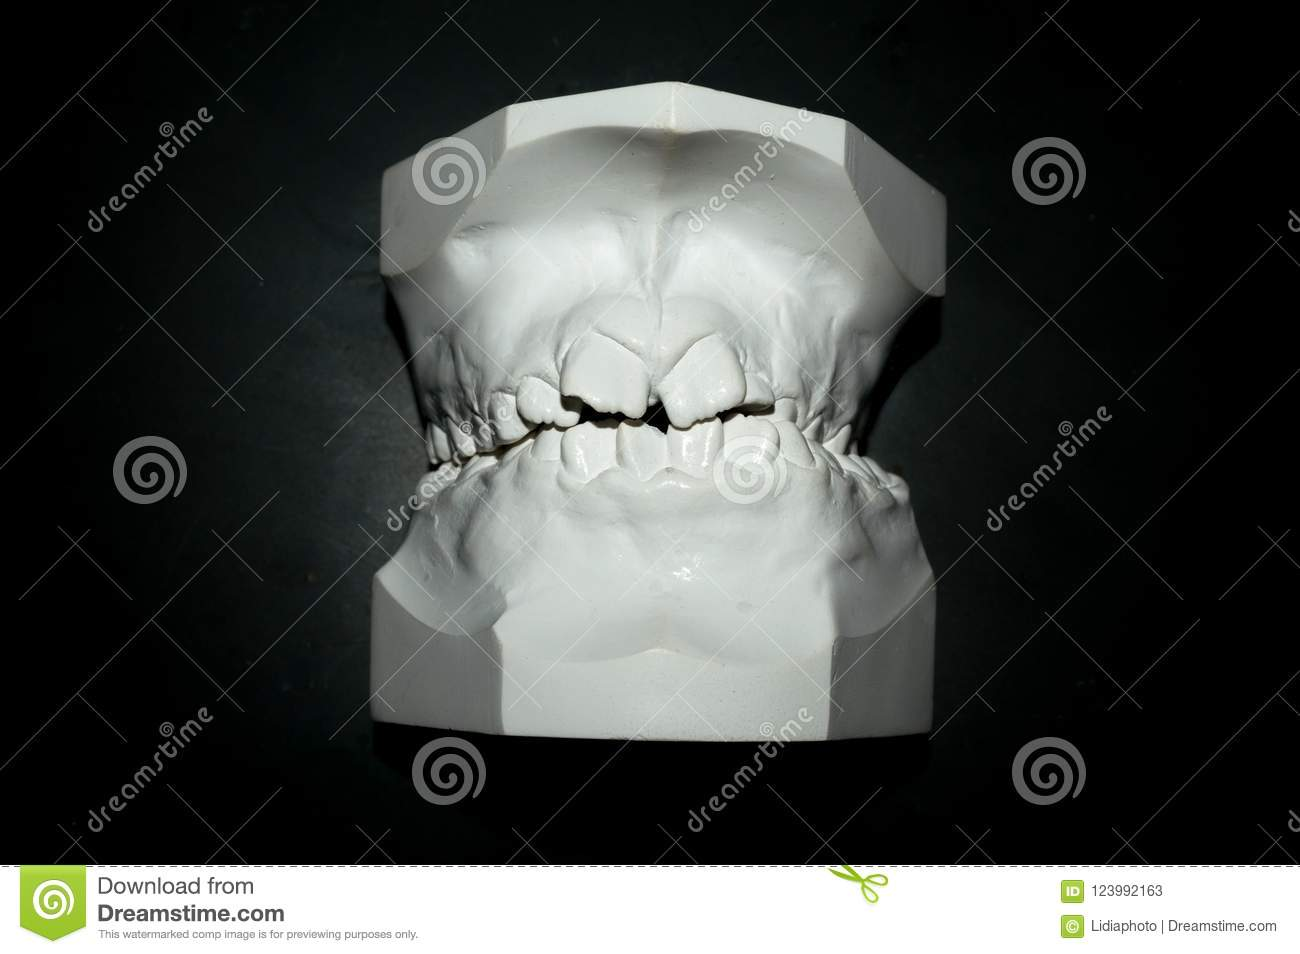 Template Of The Mouth Of A Patient For The Placement Of An